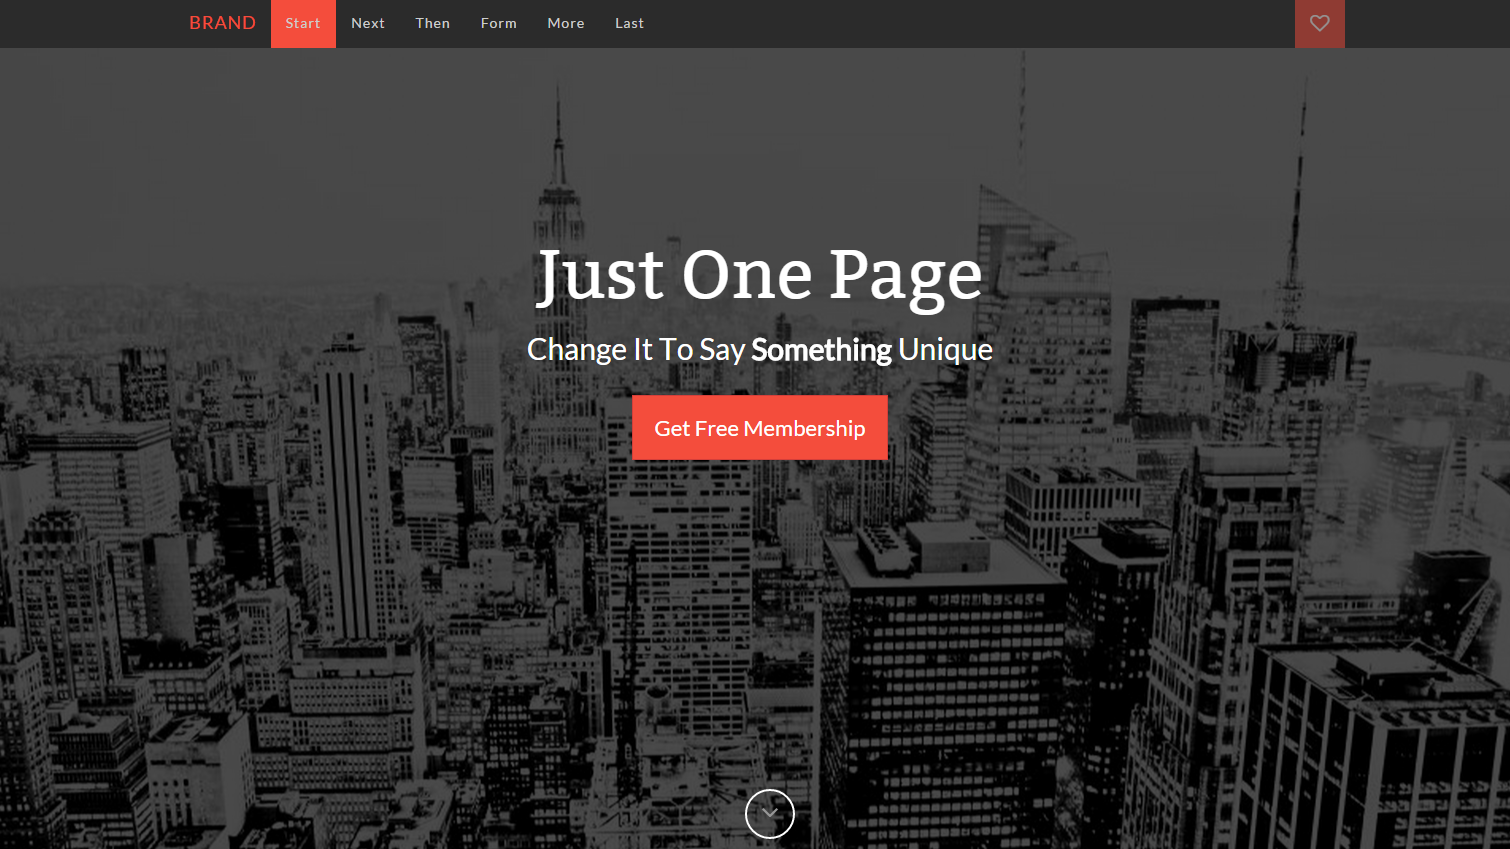 Just One Page Bootstrap Template | Freebies - Mock Ups | Pinterest ...